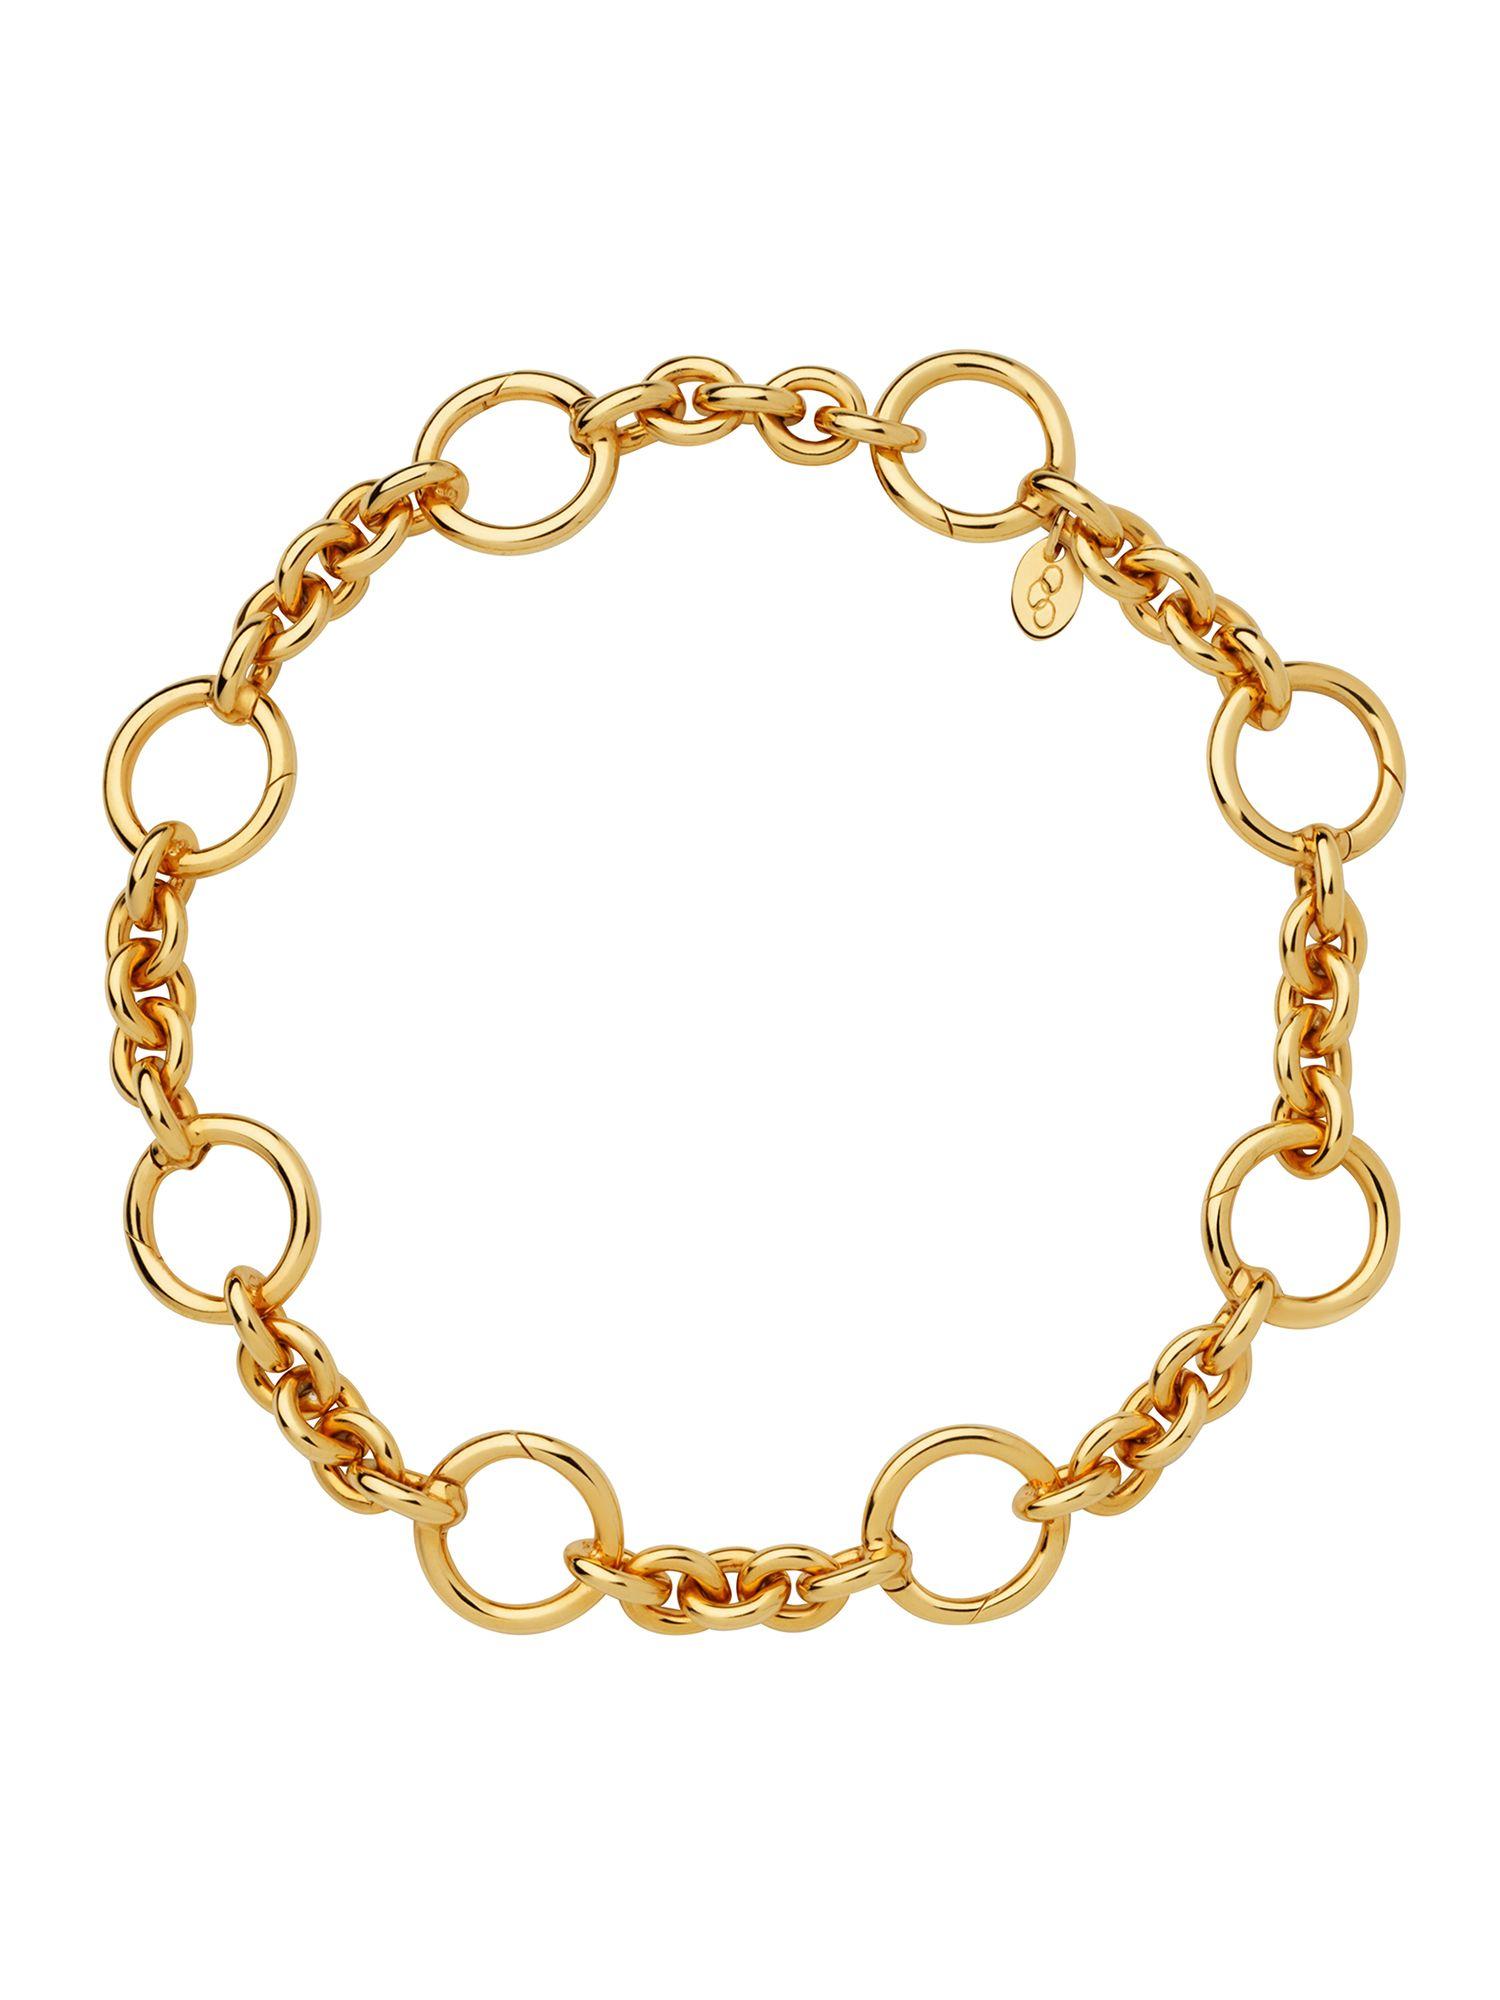 Links of London 18kt Gold Vermeil Capture Bracelet, Gold Yellow